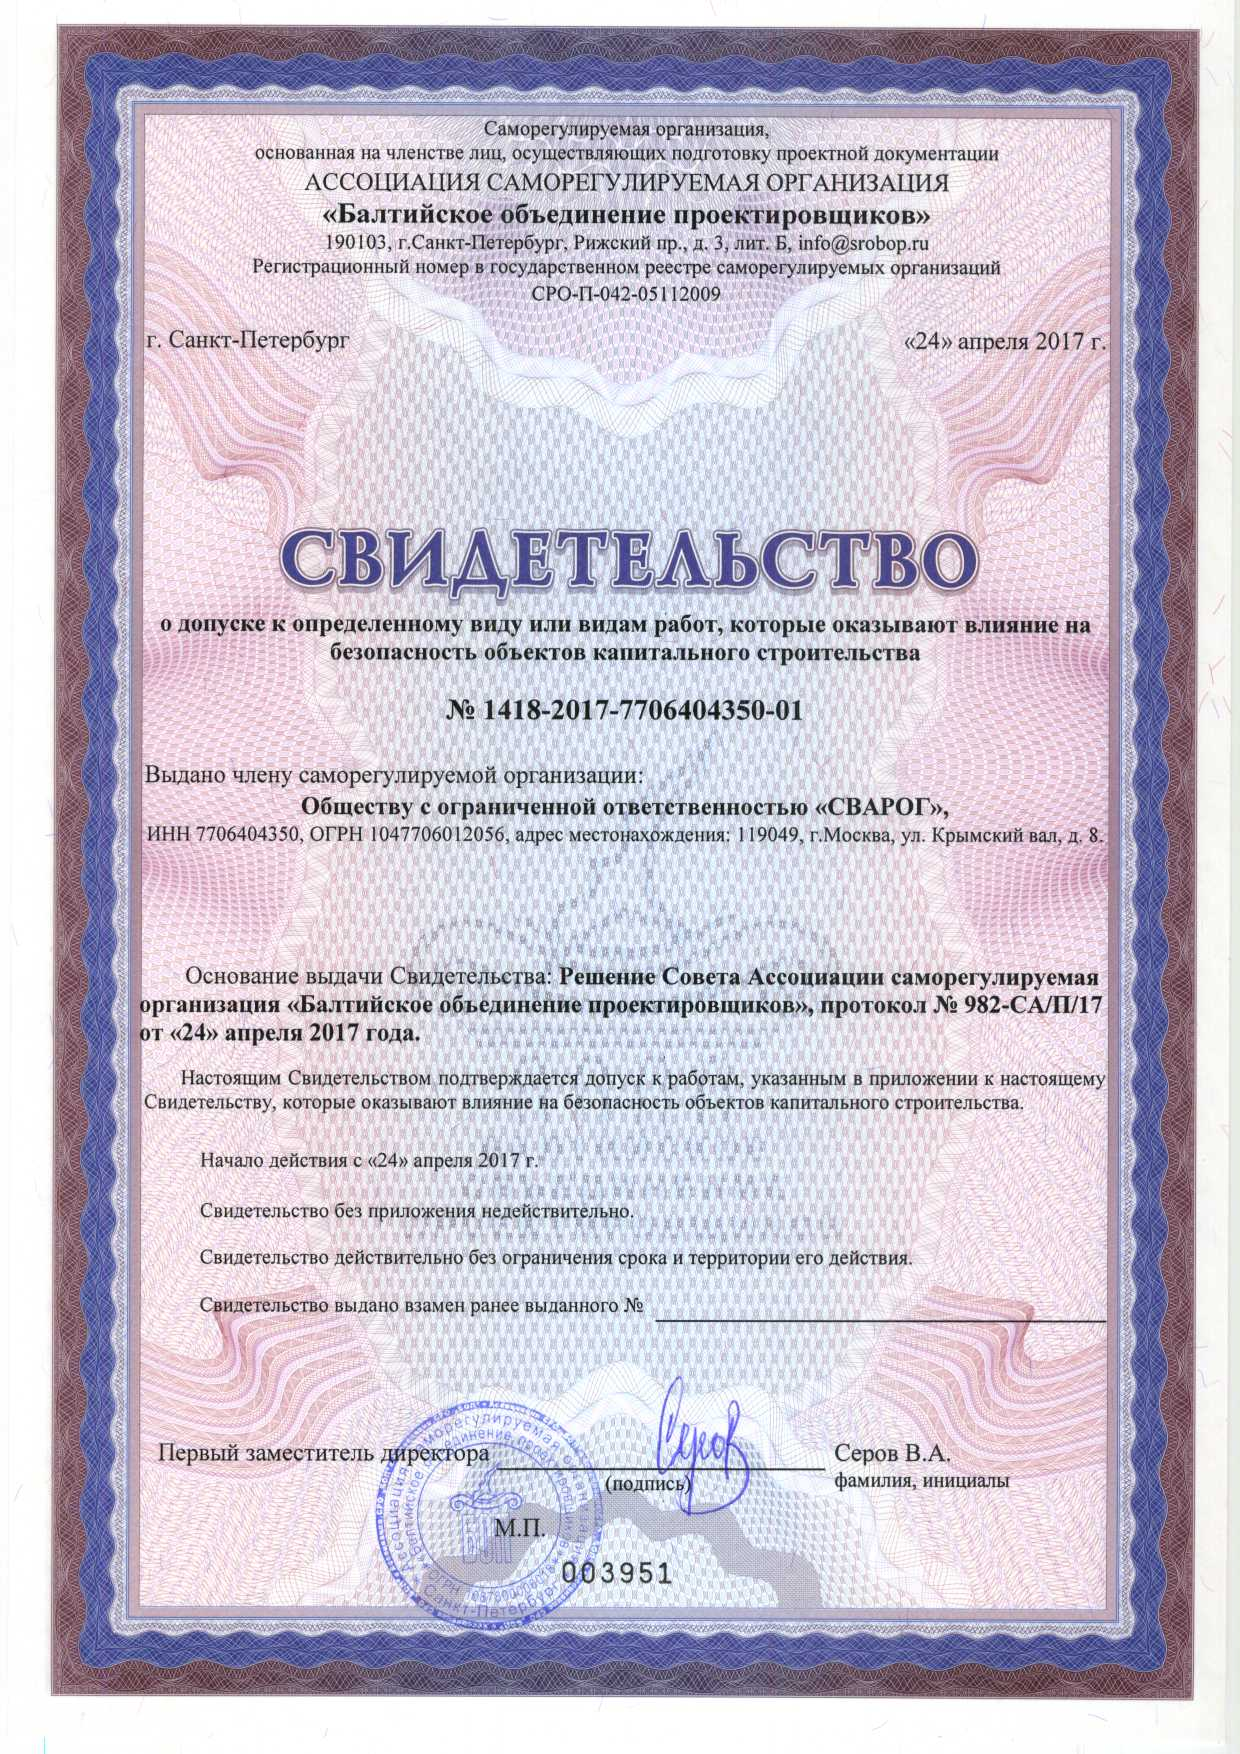 Сompetency Сertificate for Designing